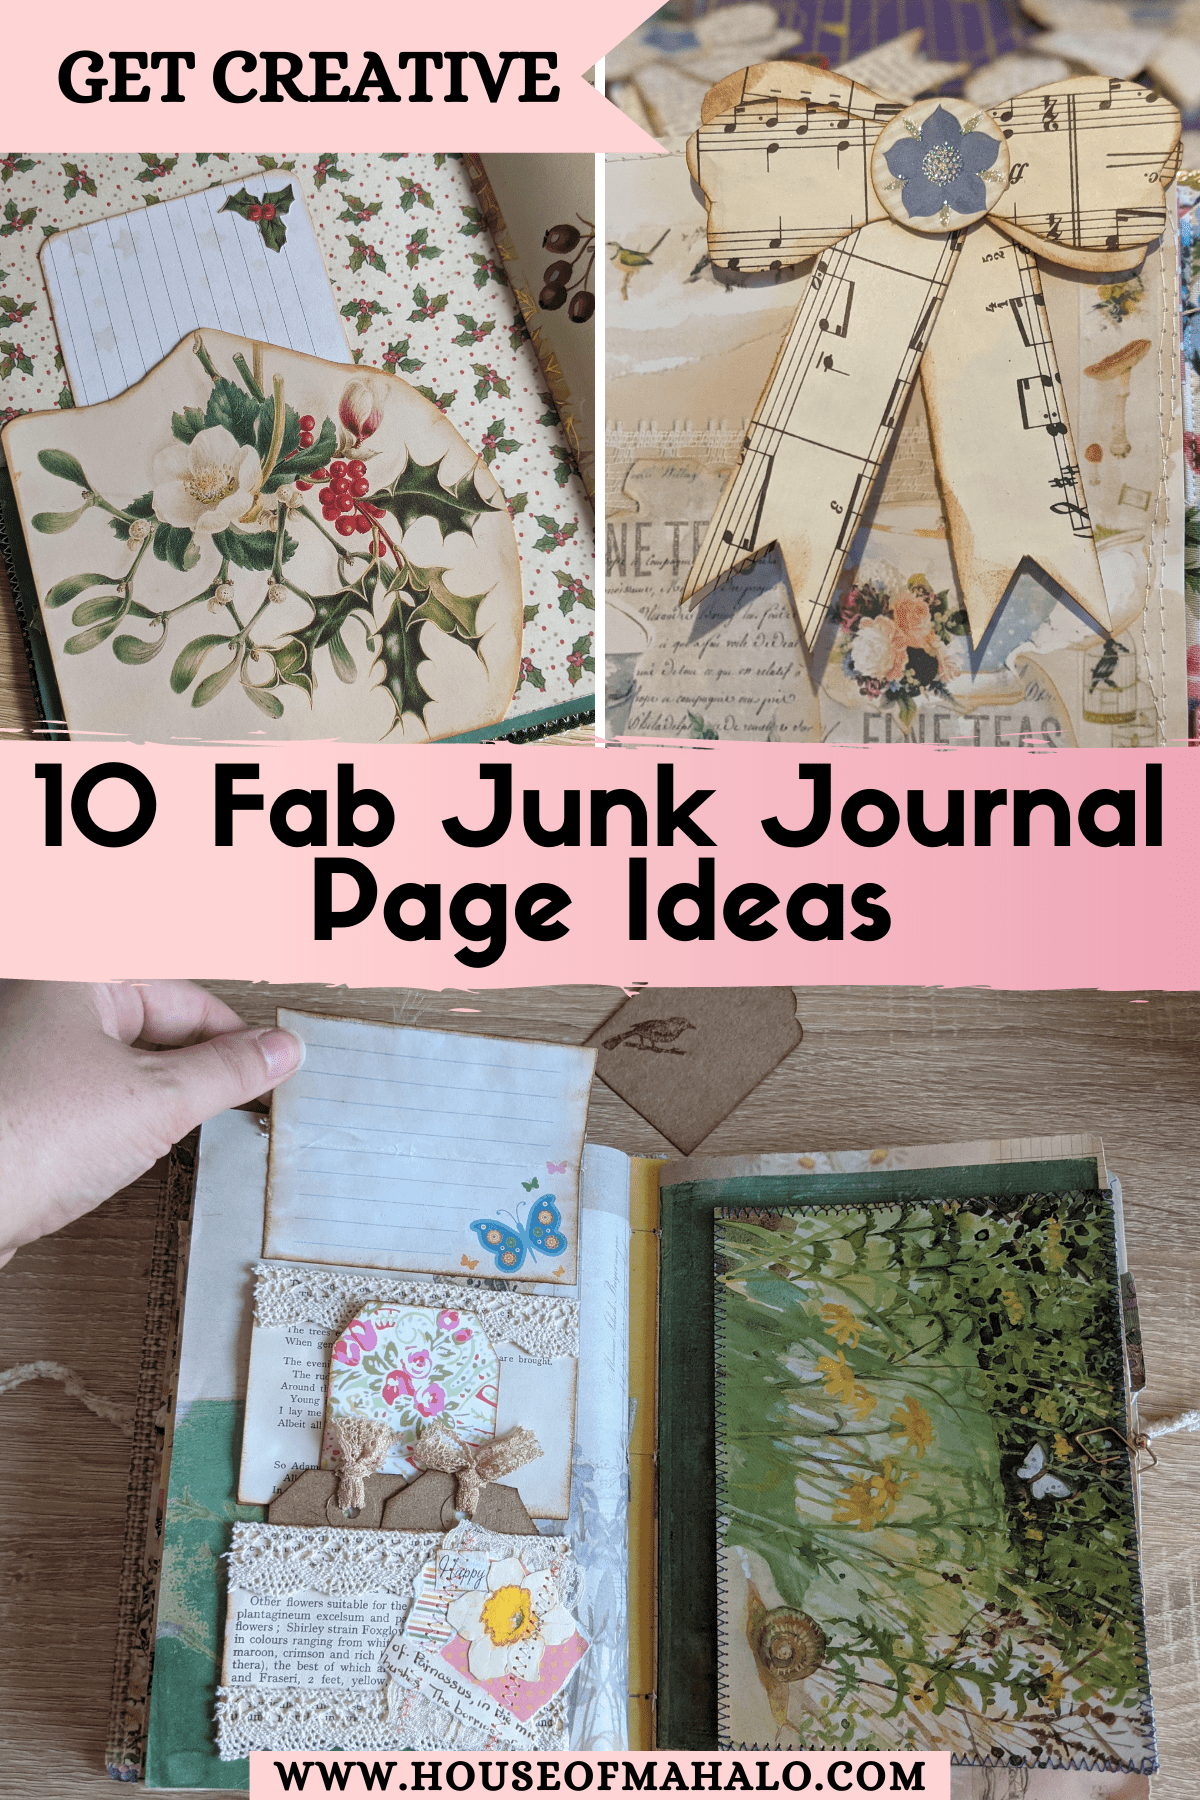 10 Junk Journal Page Ideas To Inspire You